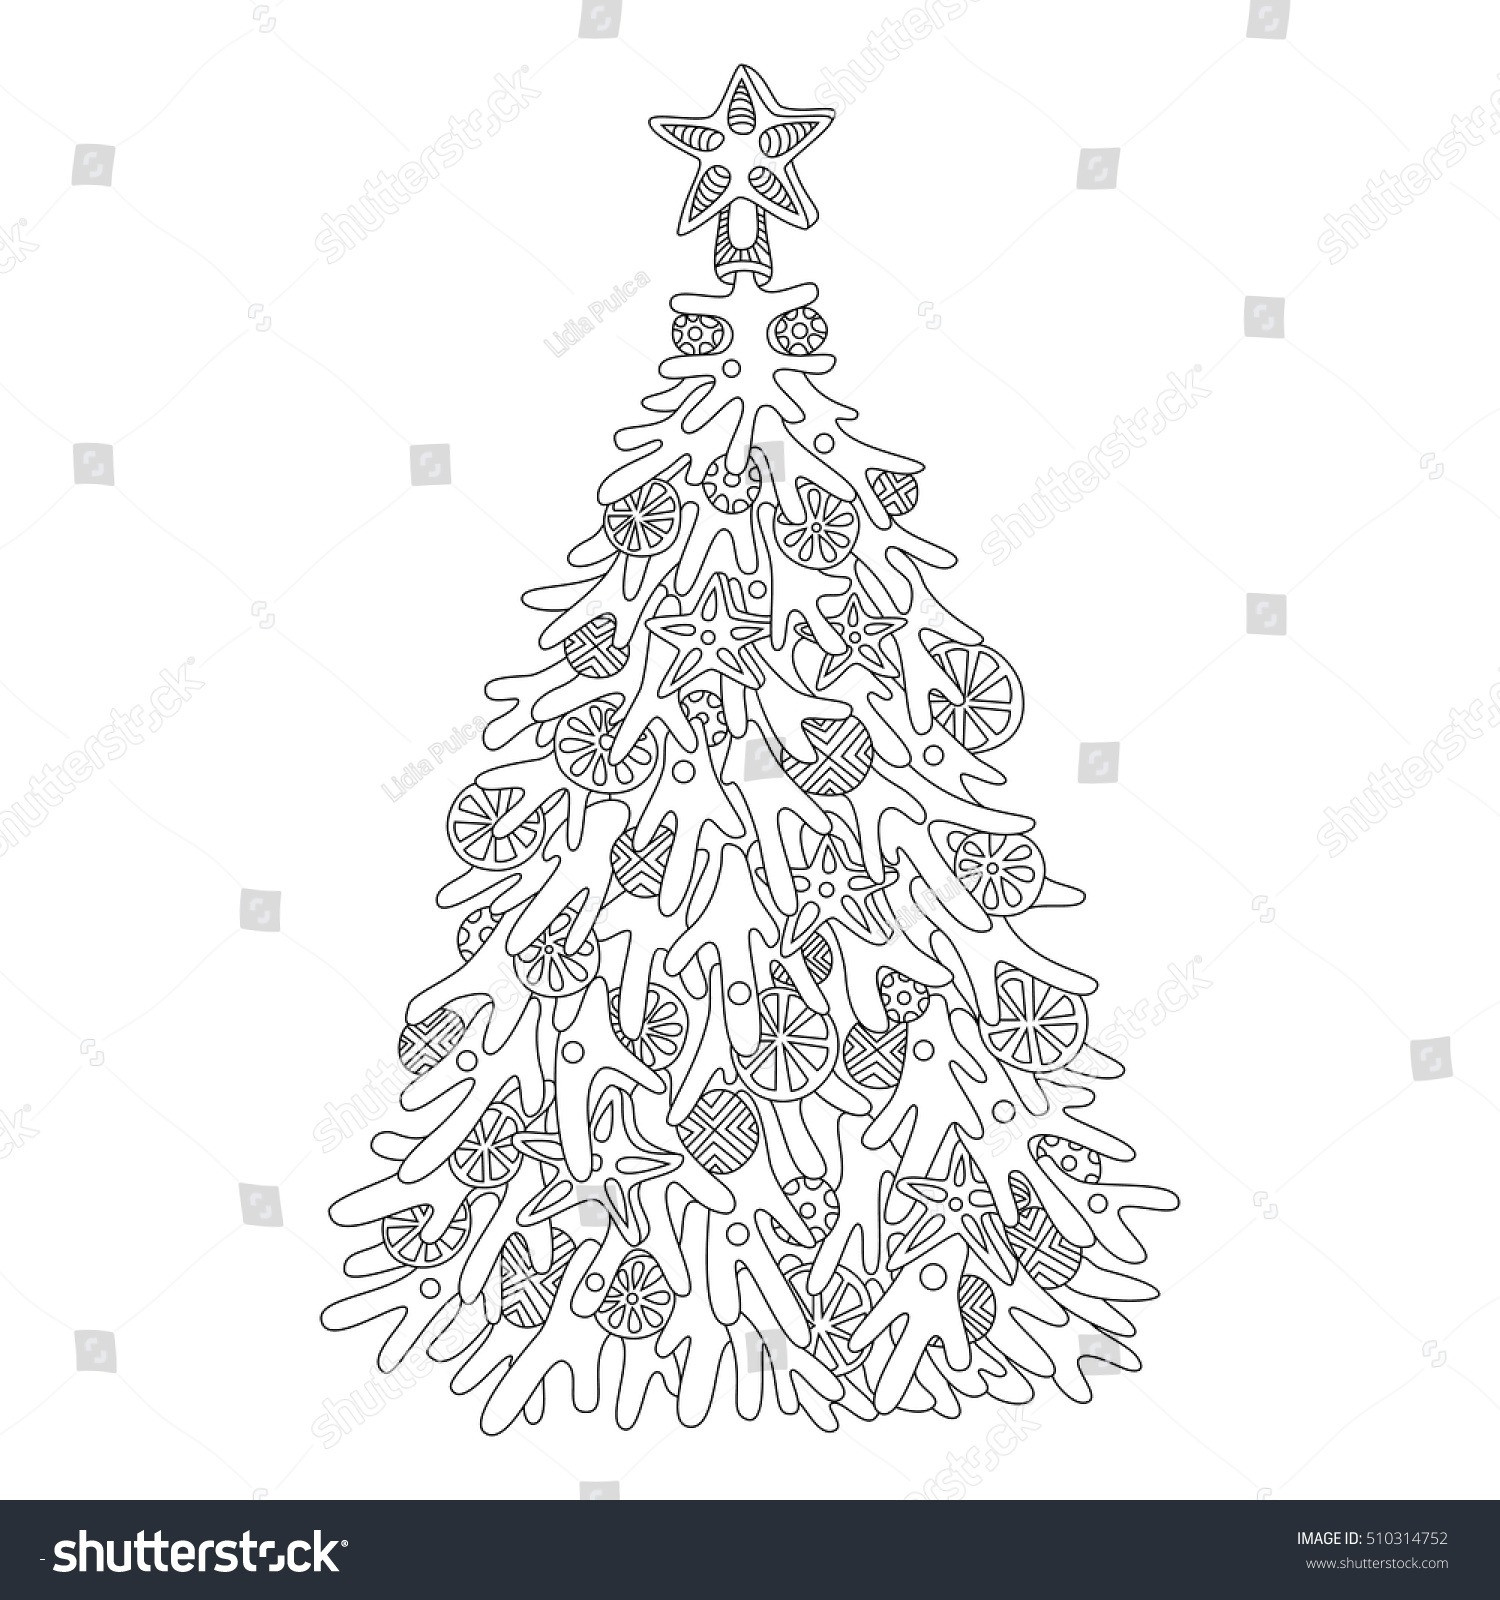 Christmas Tree Colouring Pages For Adults With Coloring Ornaments Inspirational